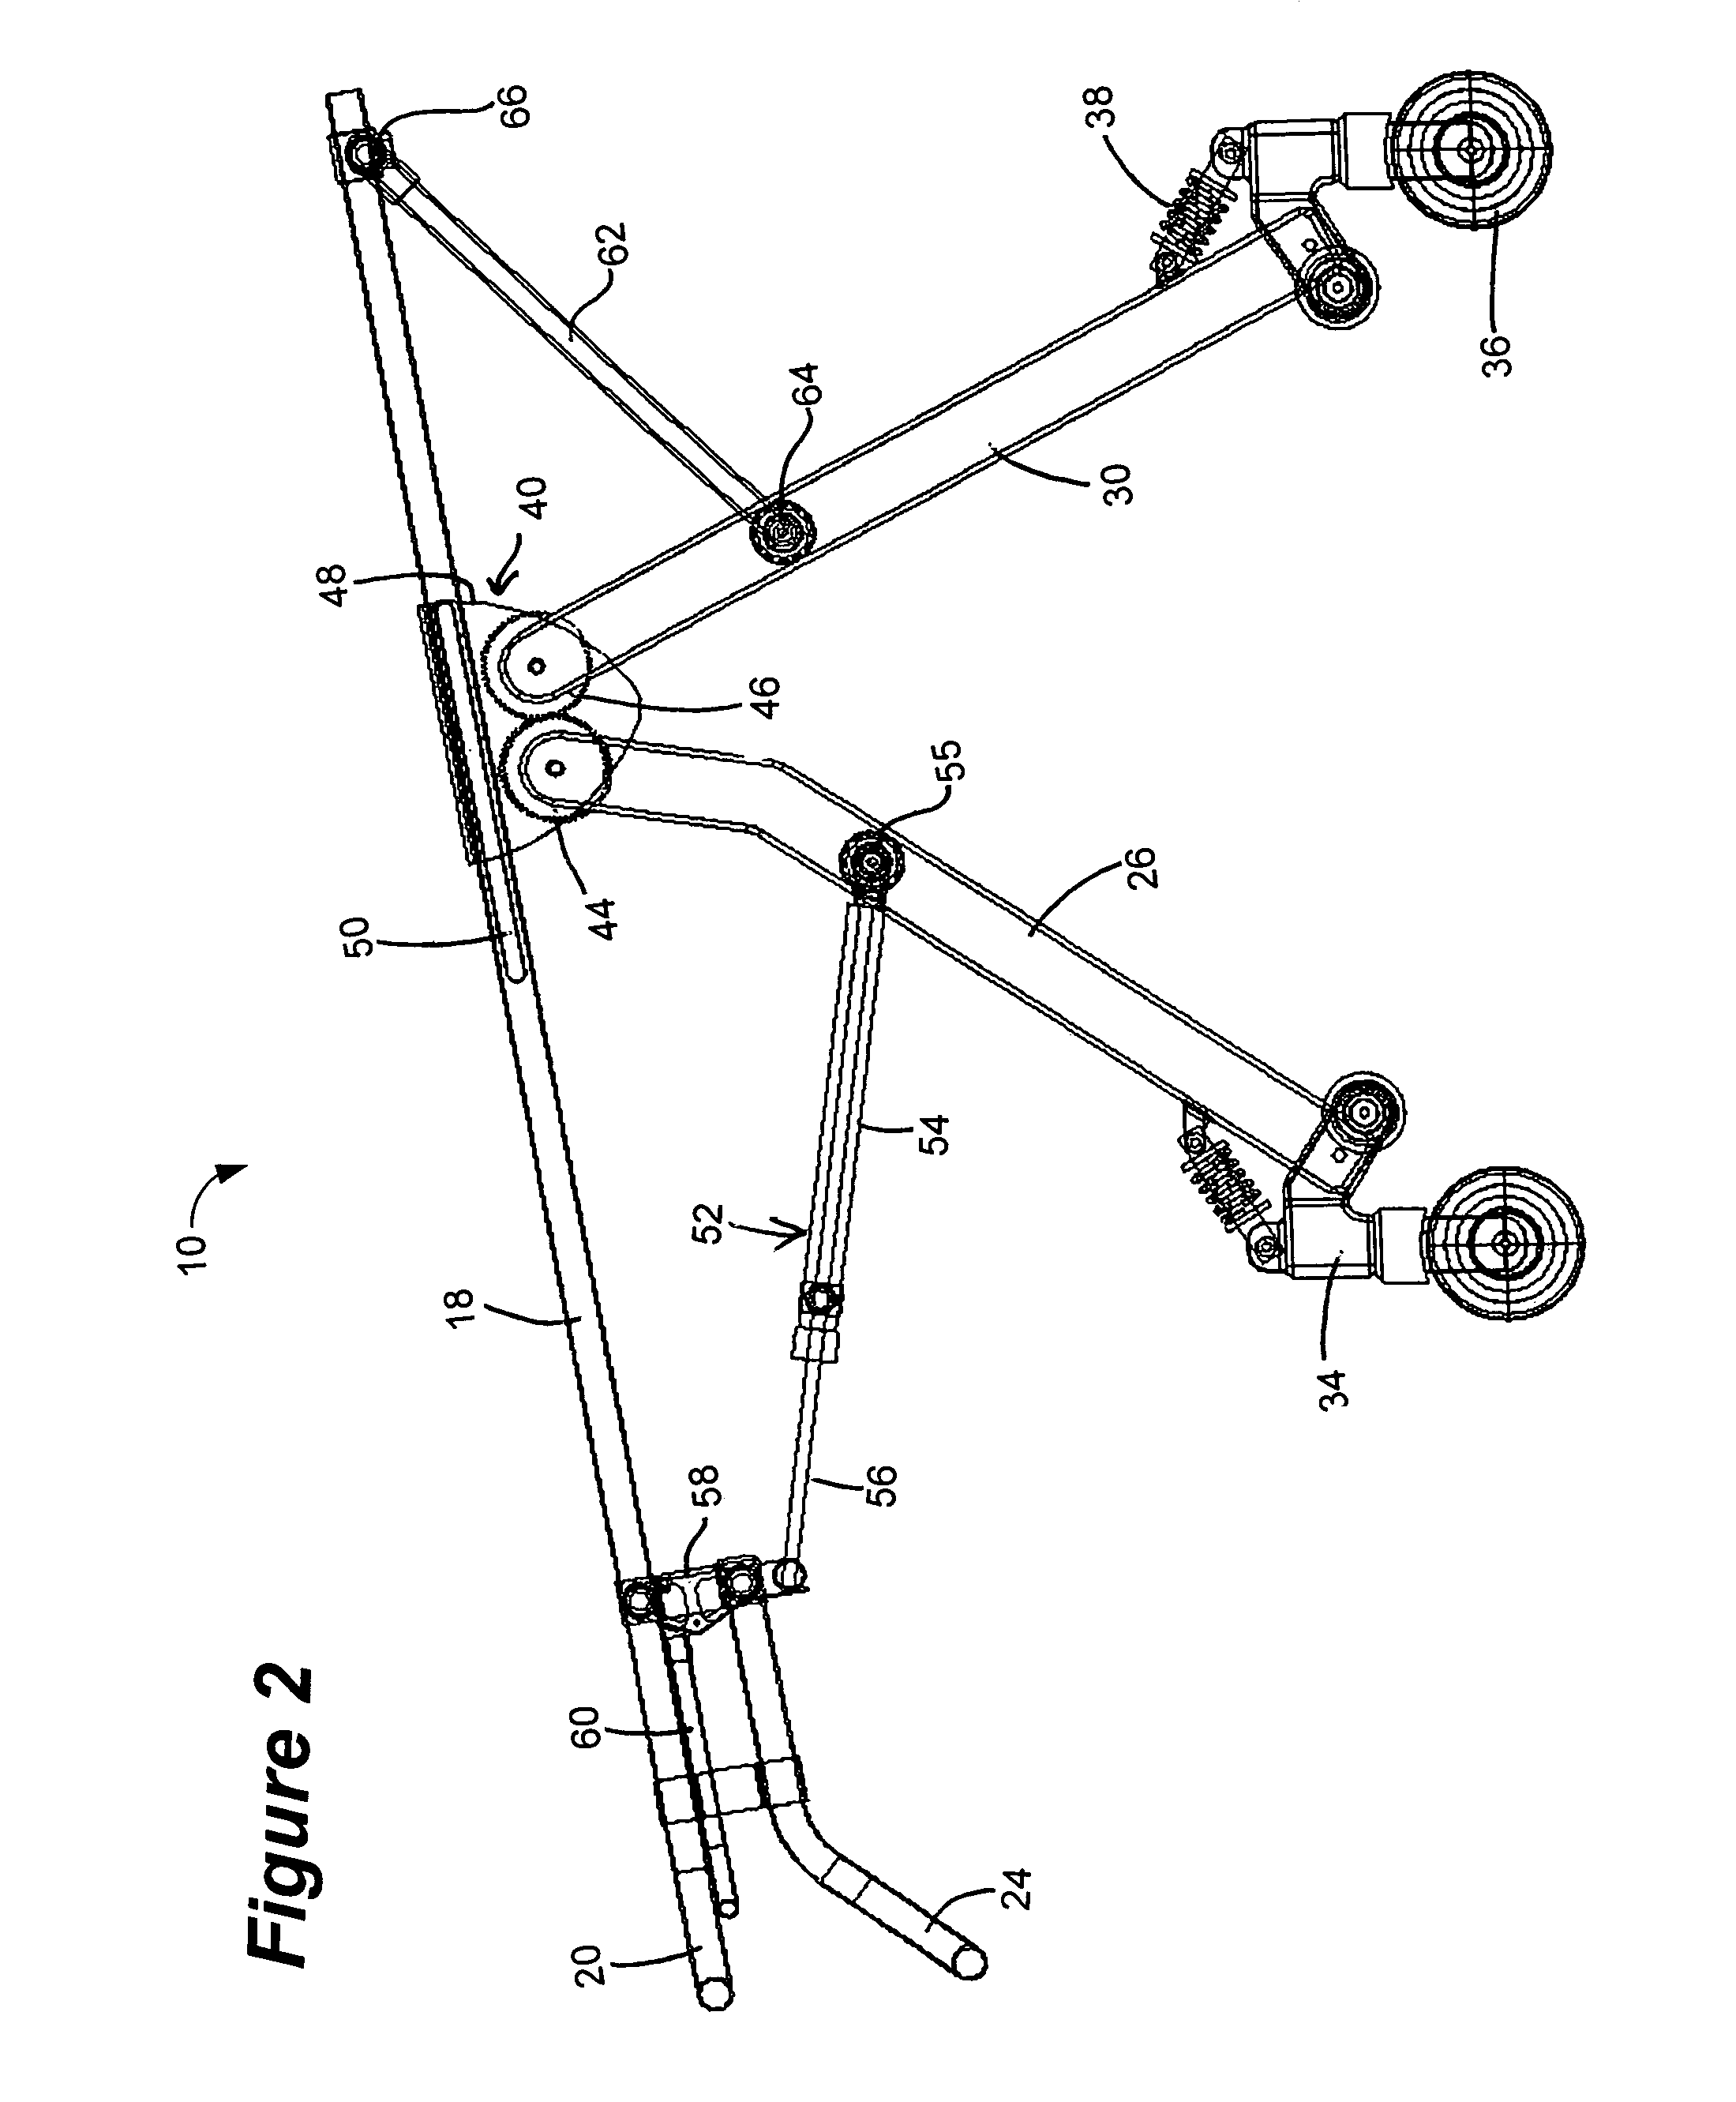 Patent US Stretcher with gear mechanism for adjustable